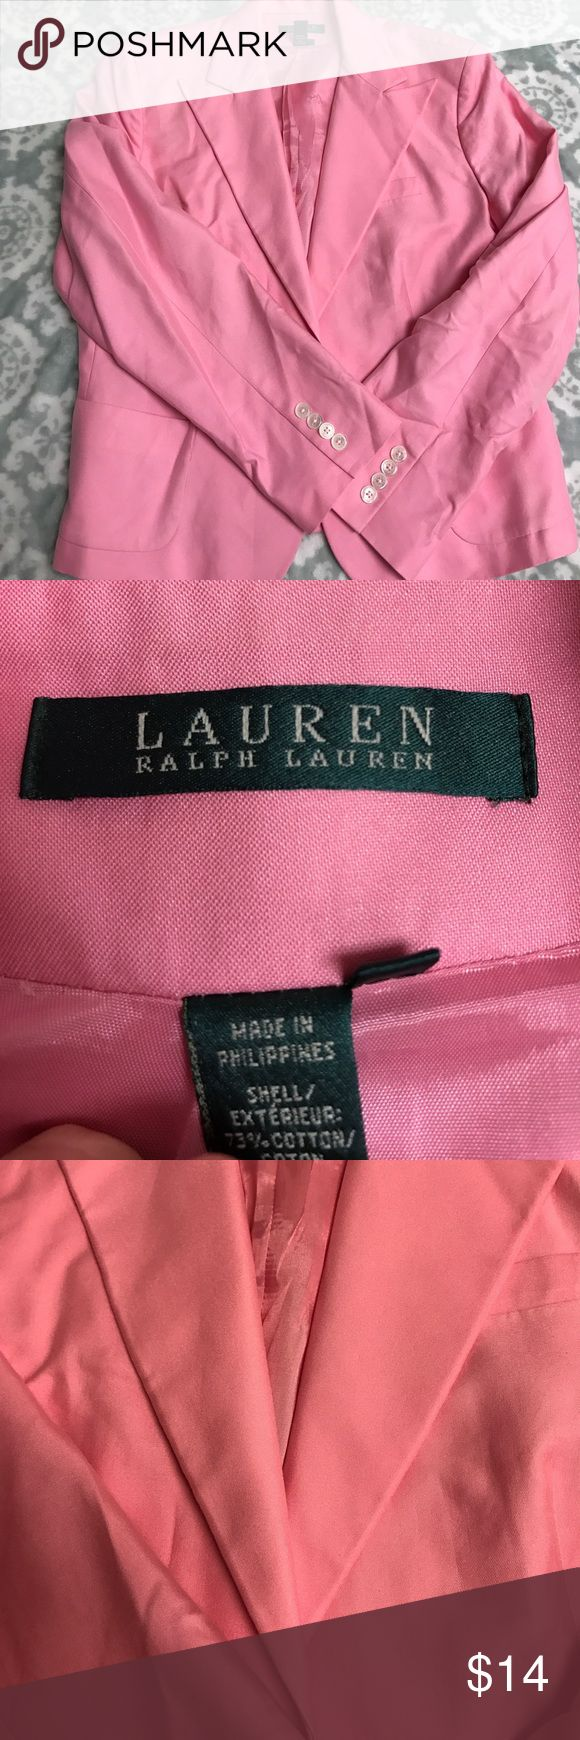 Ralph Lauren blazer Very cute. Some wear. Pink Ralph Lauren blazer. Has small shoulder pads. Lauren Ralph Lauren Jackets & Coats Blazers